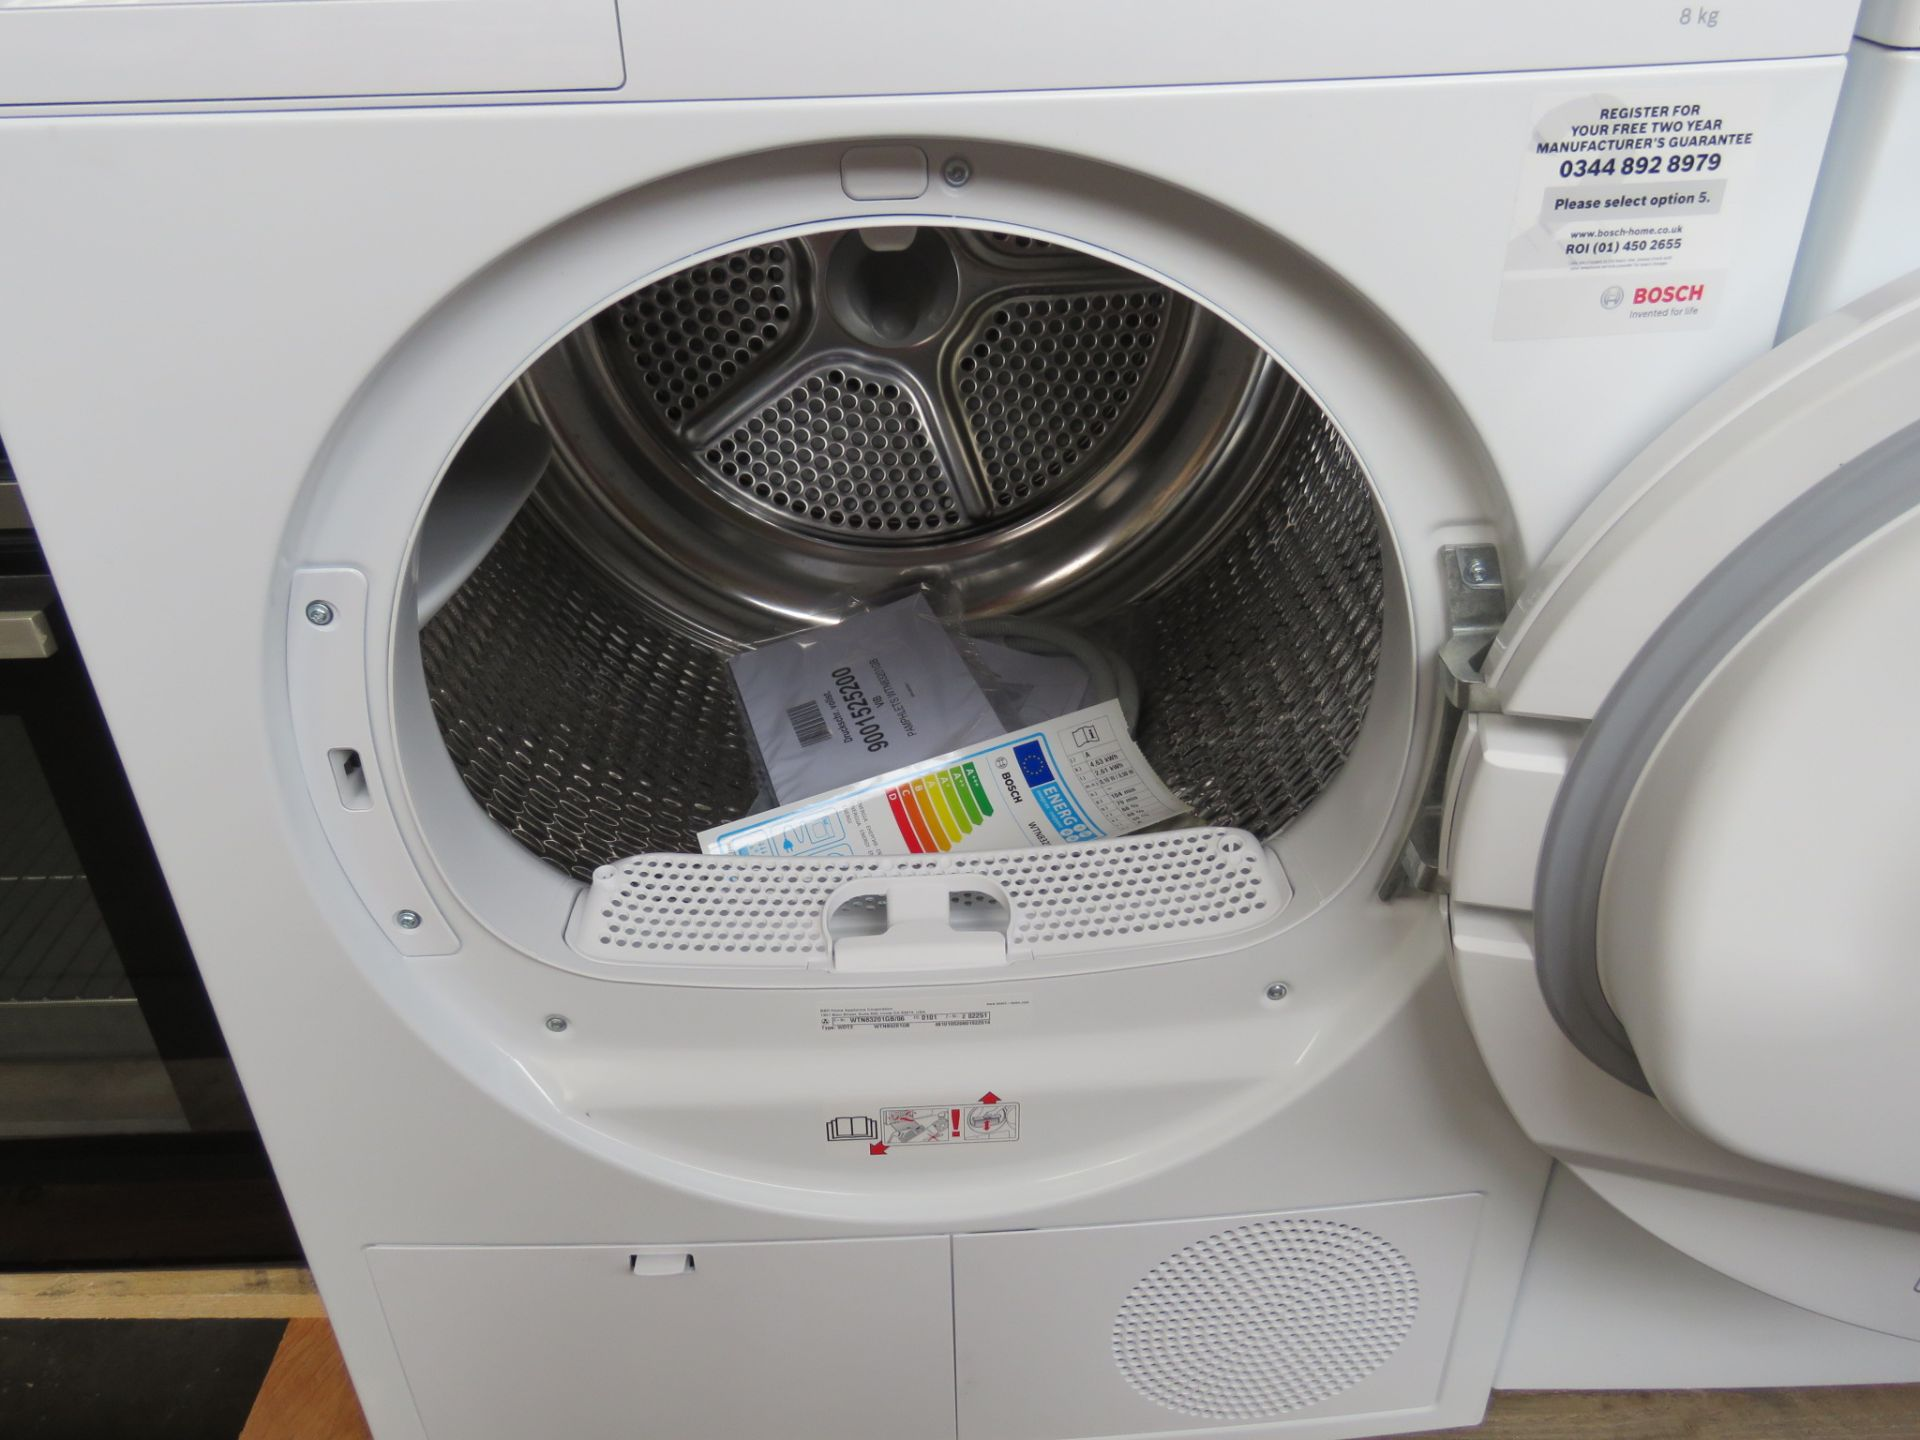 WTN83201GBB Bosch Tumble dryer - Image 2 of 2